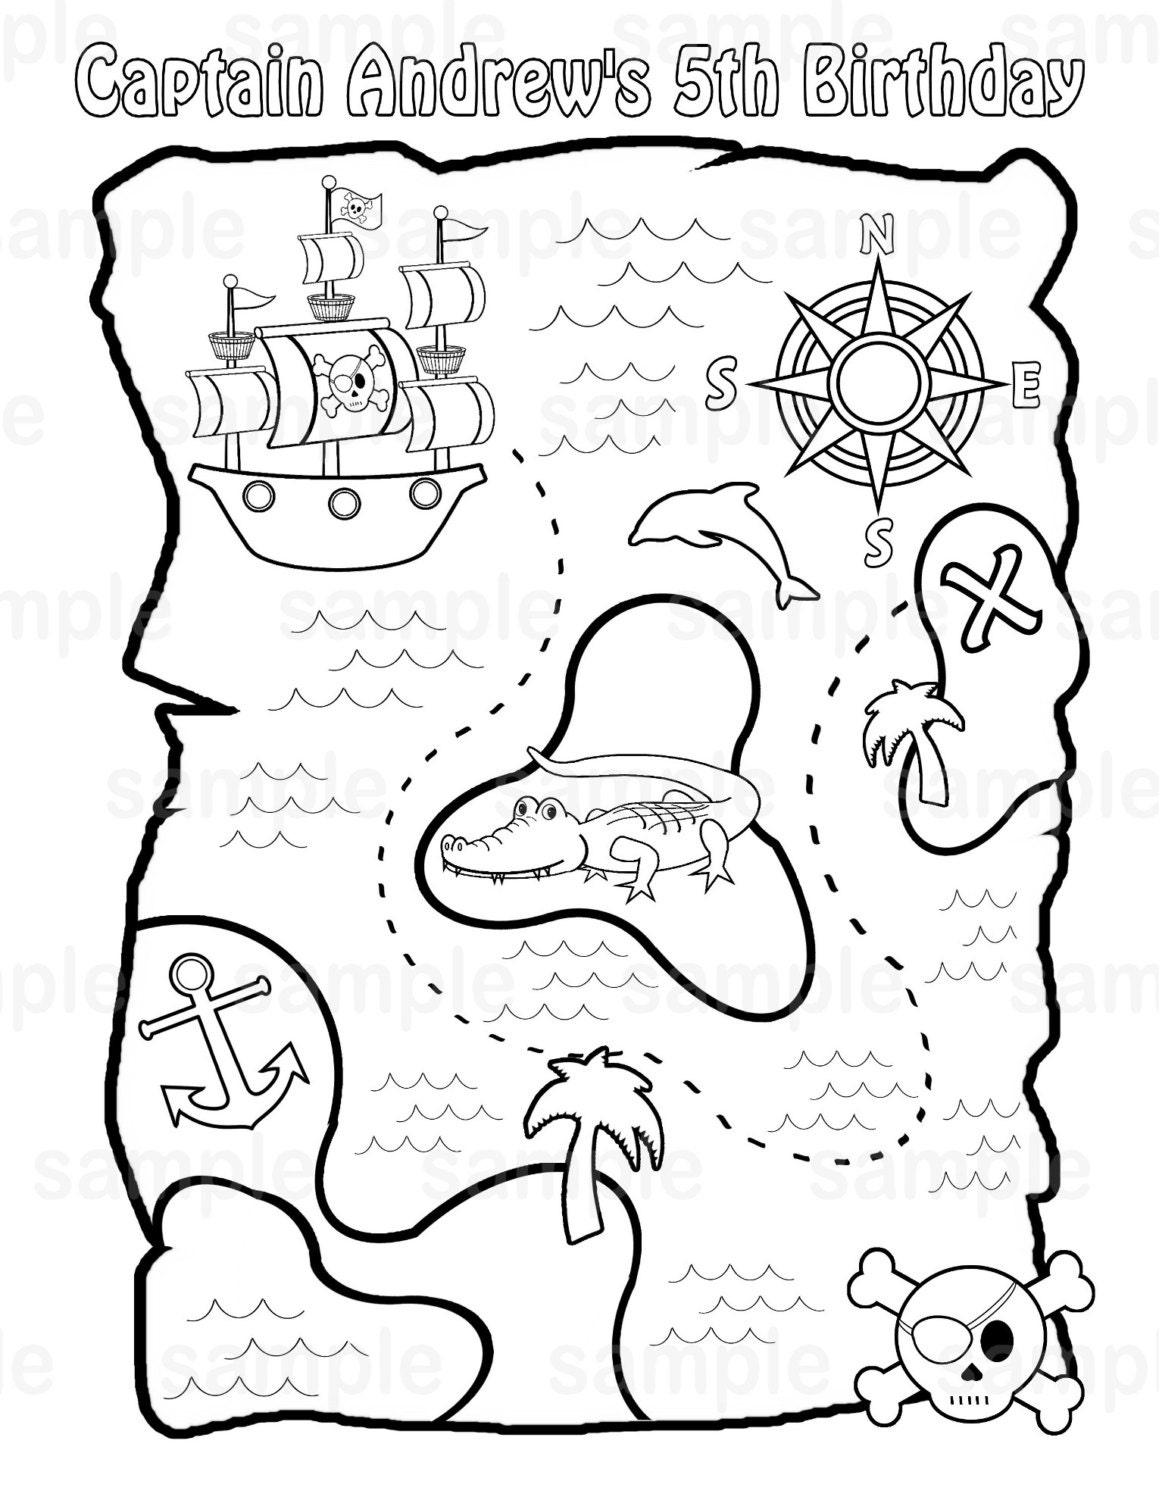 Personalized Printable Pirate Treasure Map Birthday Party ... X Marks The Spot Coloring Page